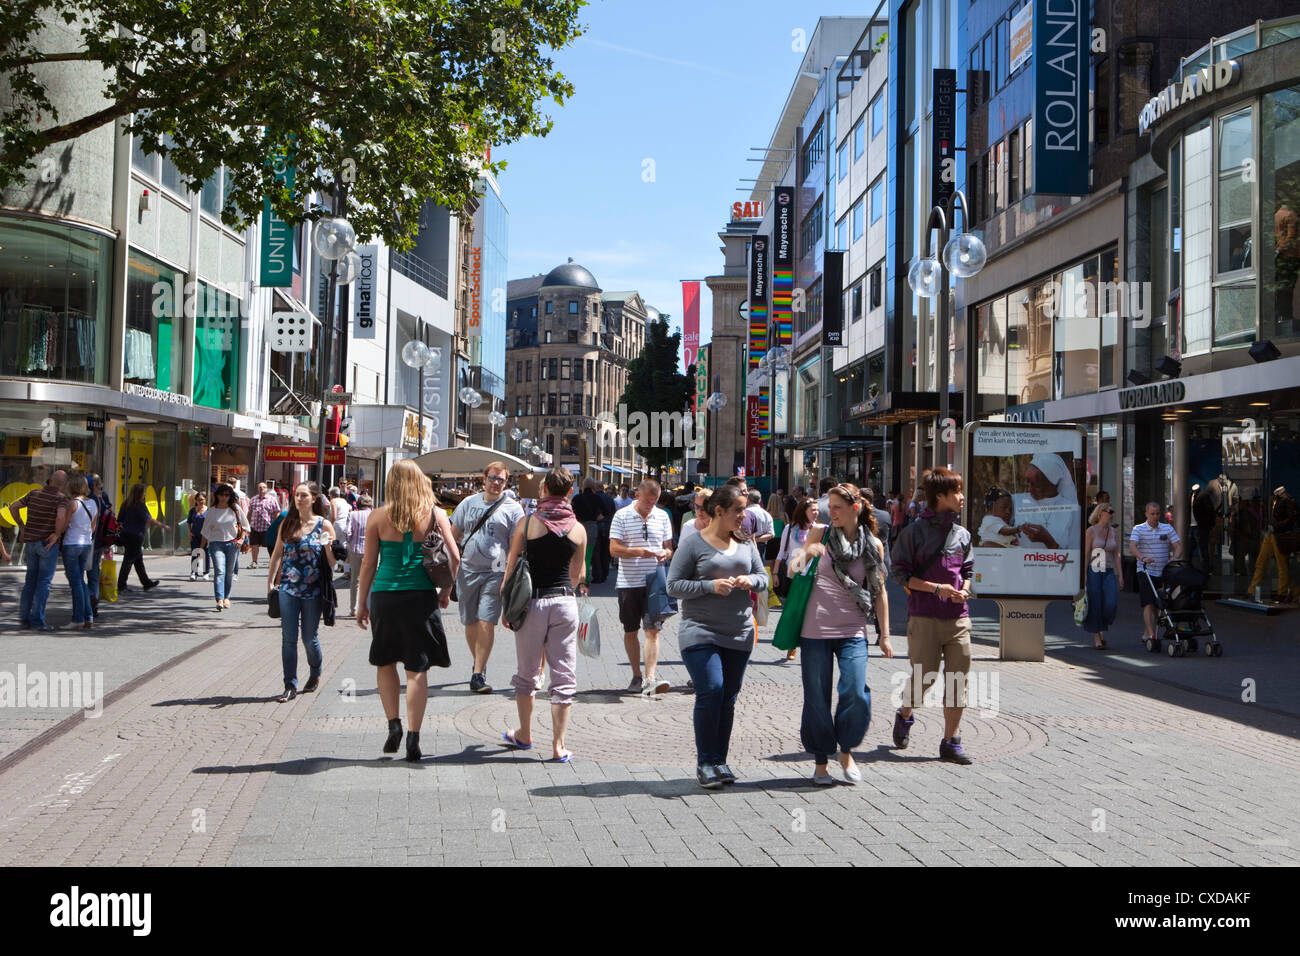 pedestrians in the city centre of cologne schildergasse north stockfoto lizenzfreies bild. Black Bedroom Furniture Sets. Home Design Ideas